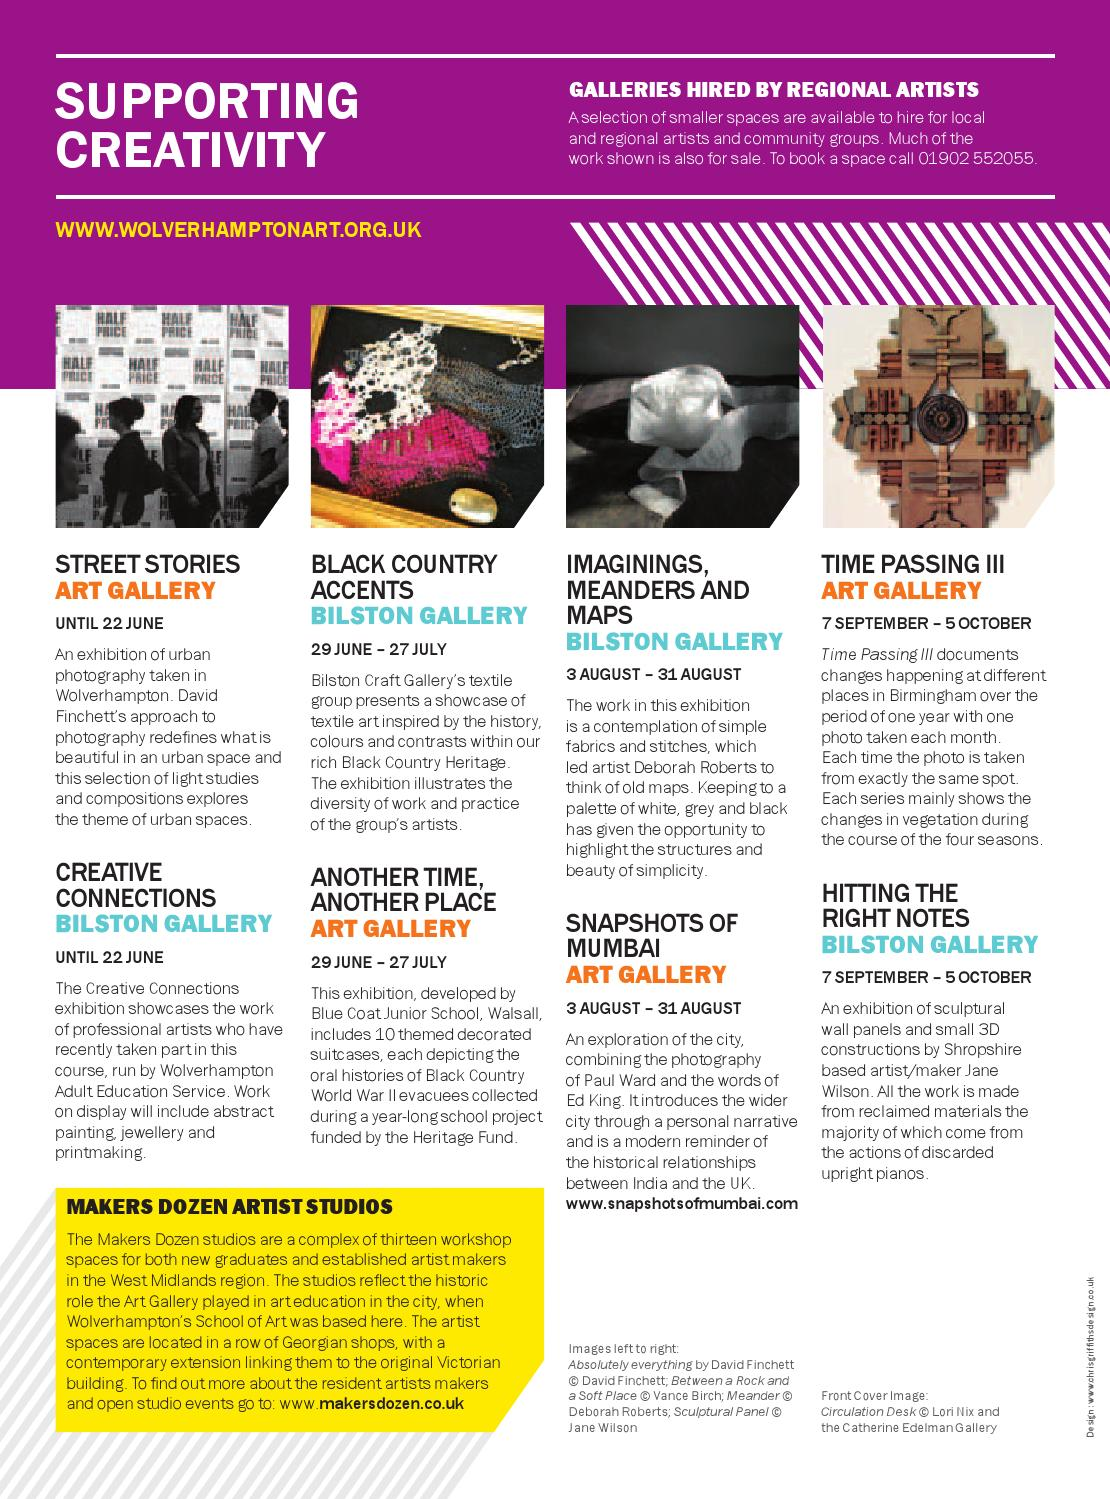 WAVE Exhibitions and Events Jun - Sept 2013 by Wolverhampton